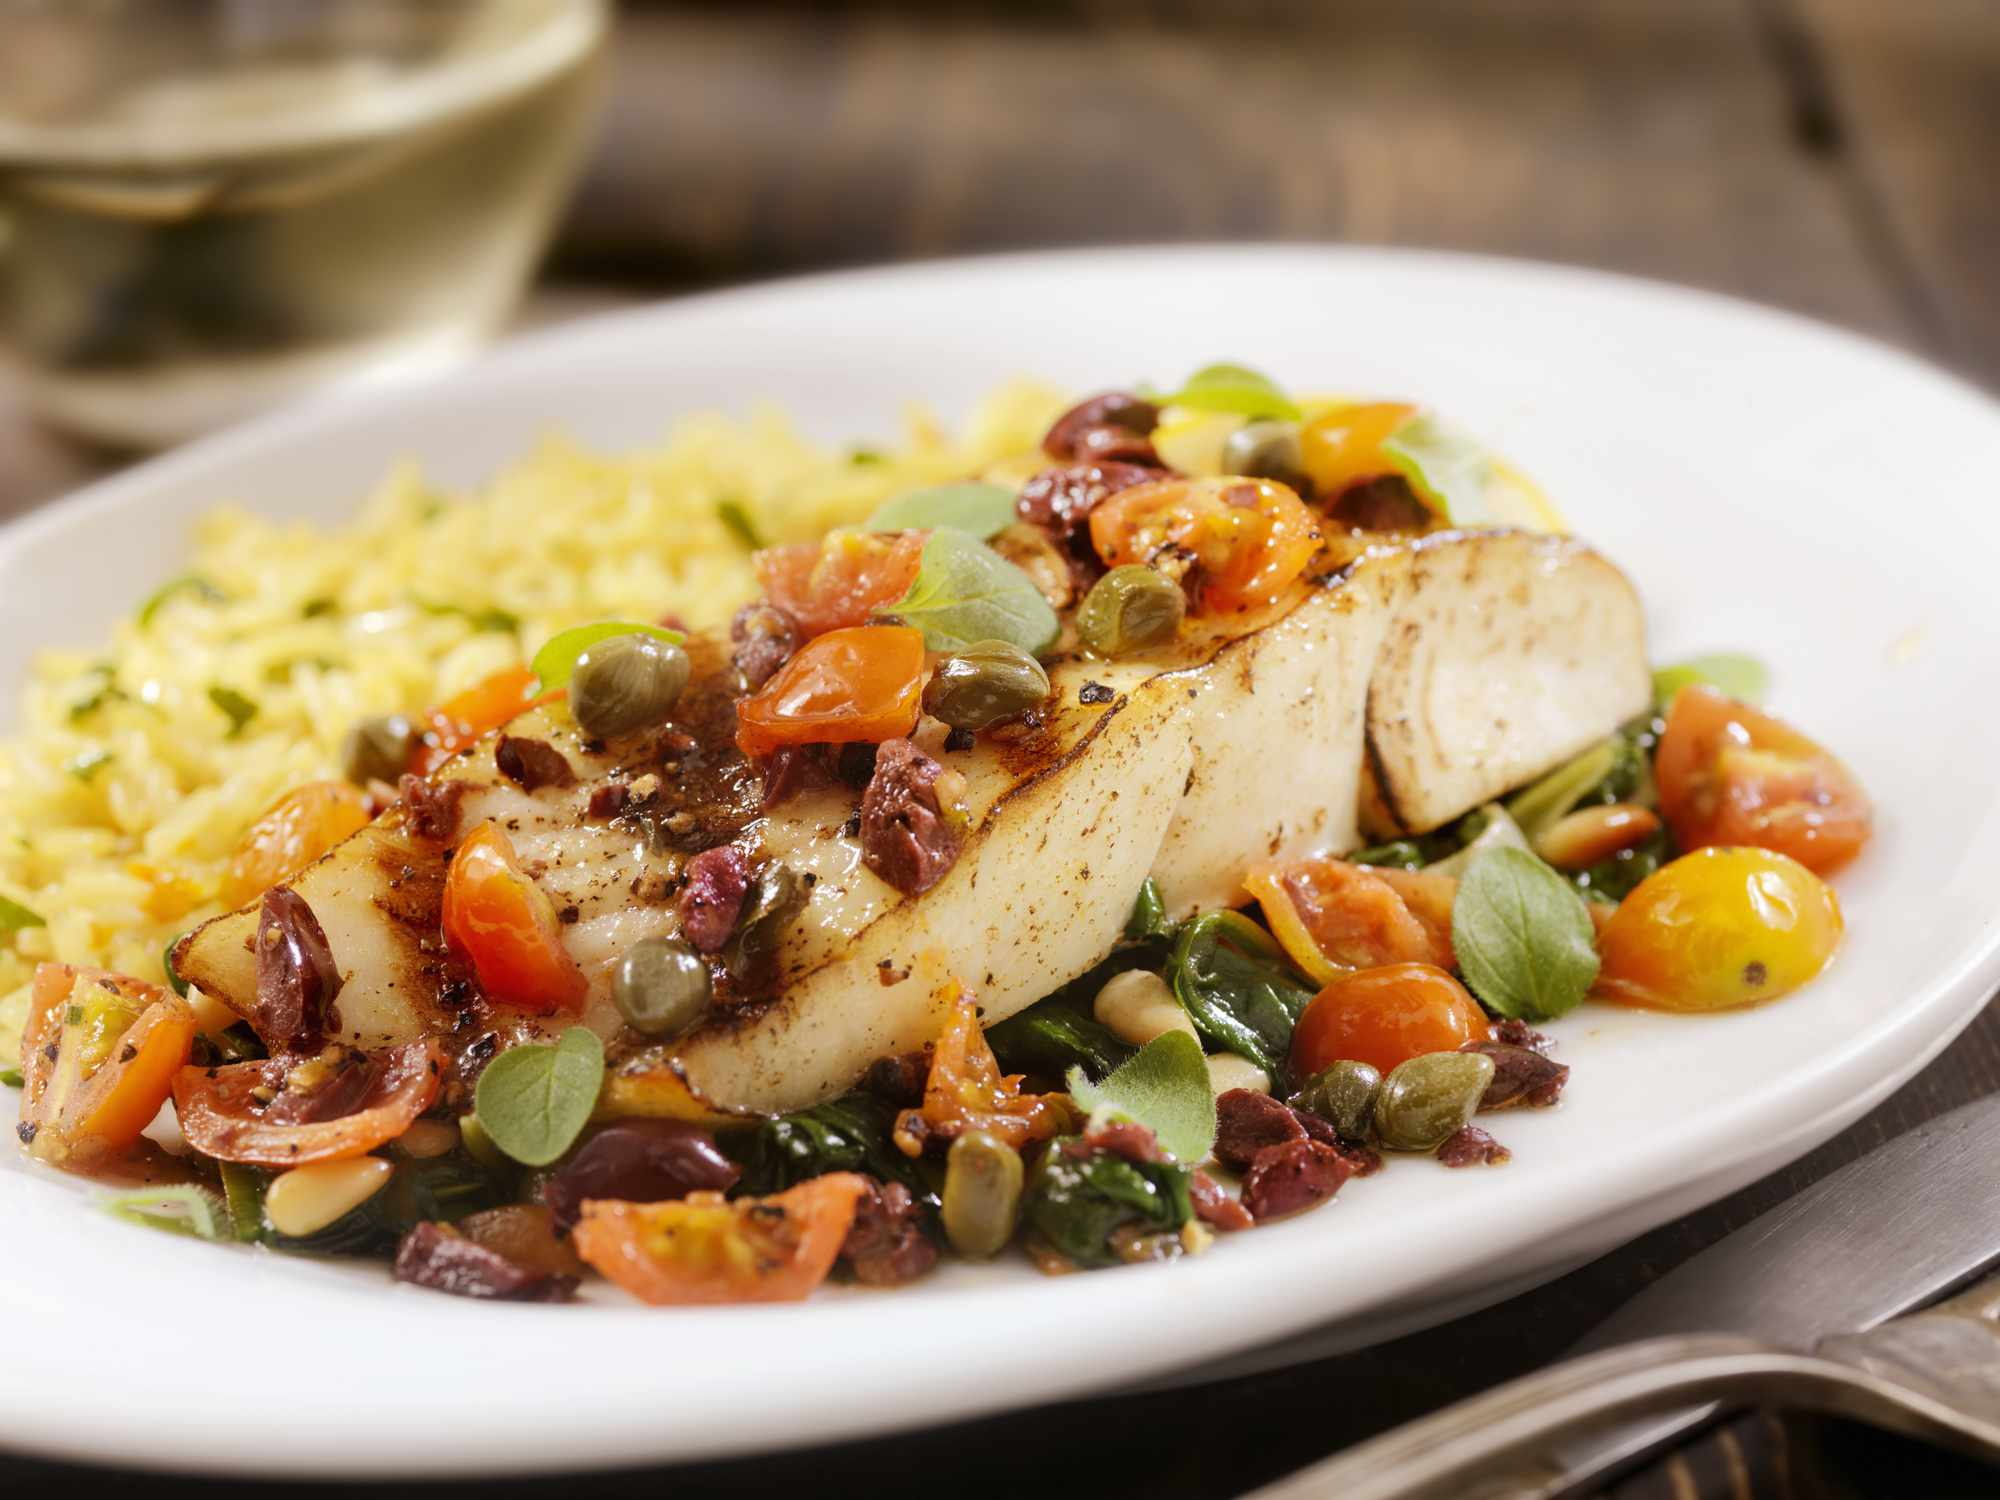 Grilled halibut with capers, olives, and tomatoes